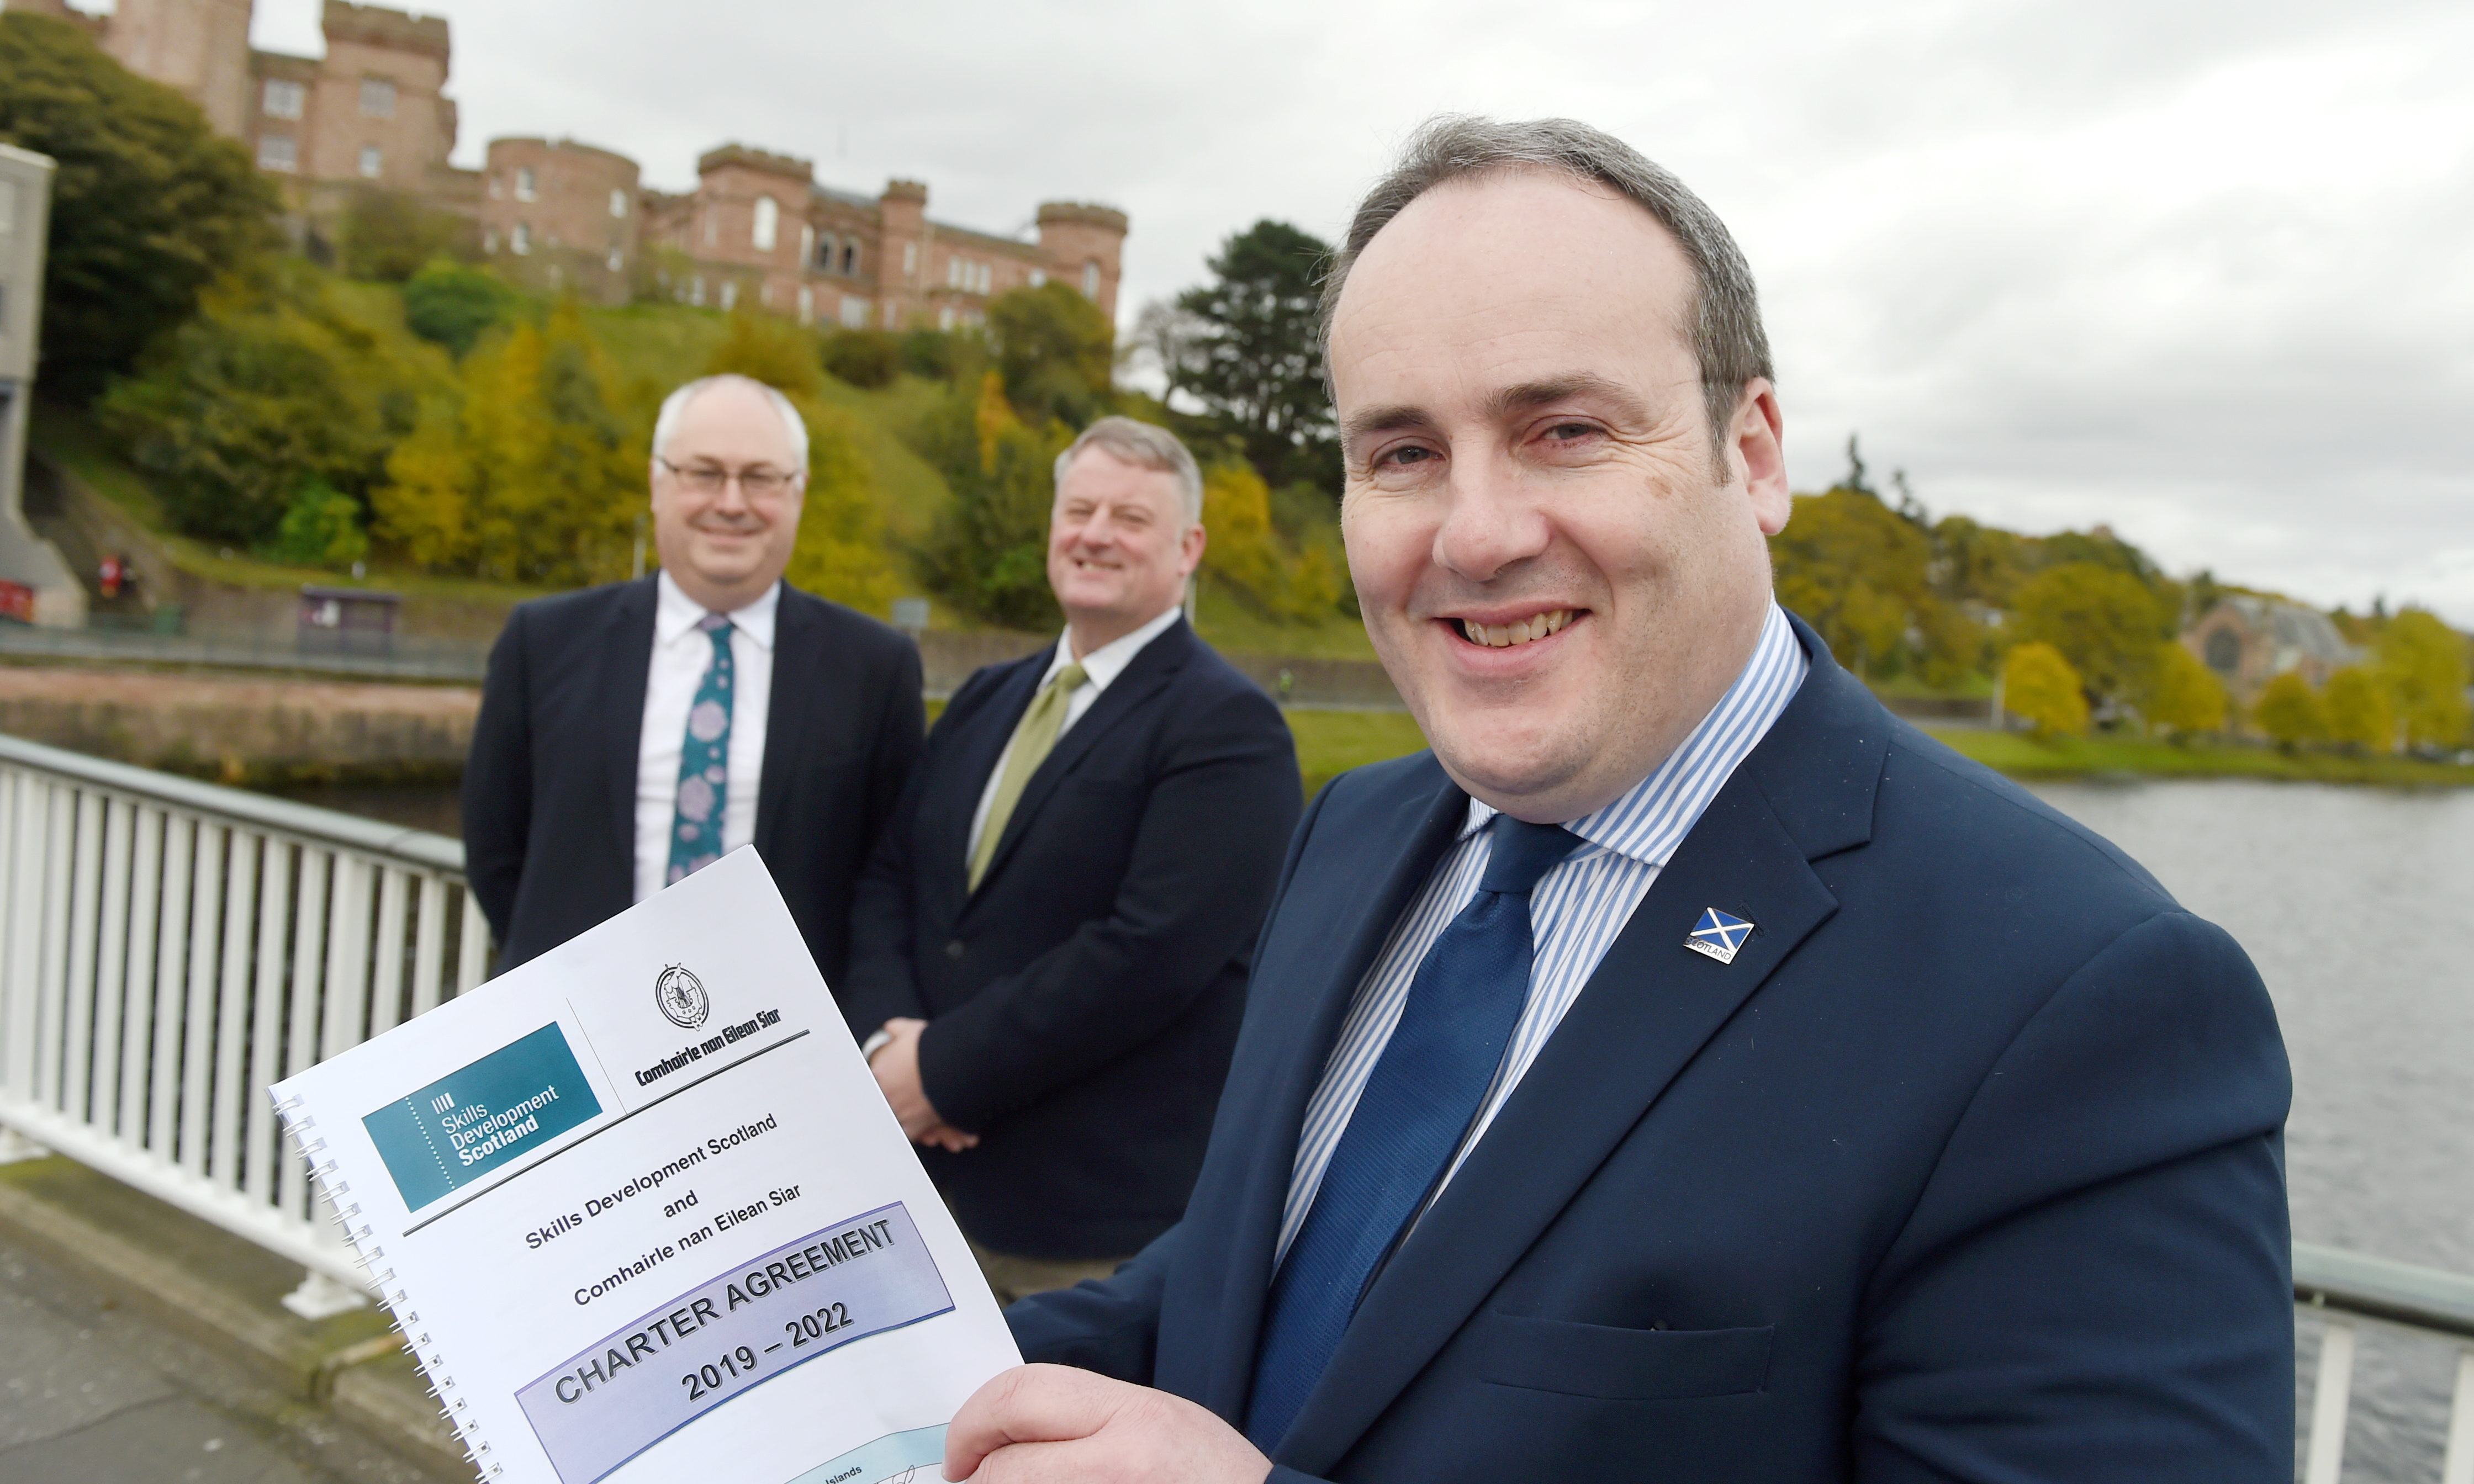 Scottish Government Minister Paul Wheelhouse with Malcolm Burr, Chief Executive of Western Isles Council (left) and Frank Mitchell, Chief Executive of Skills Development Scotland as the agreement was signed in Inverness yesterday. Photo by Sandy McCook